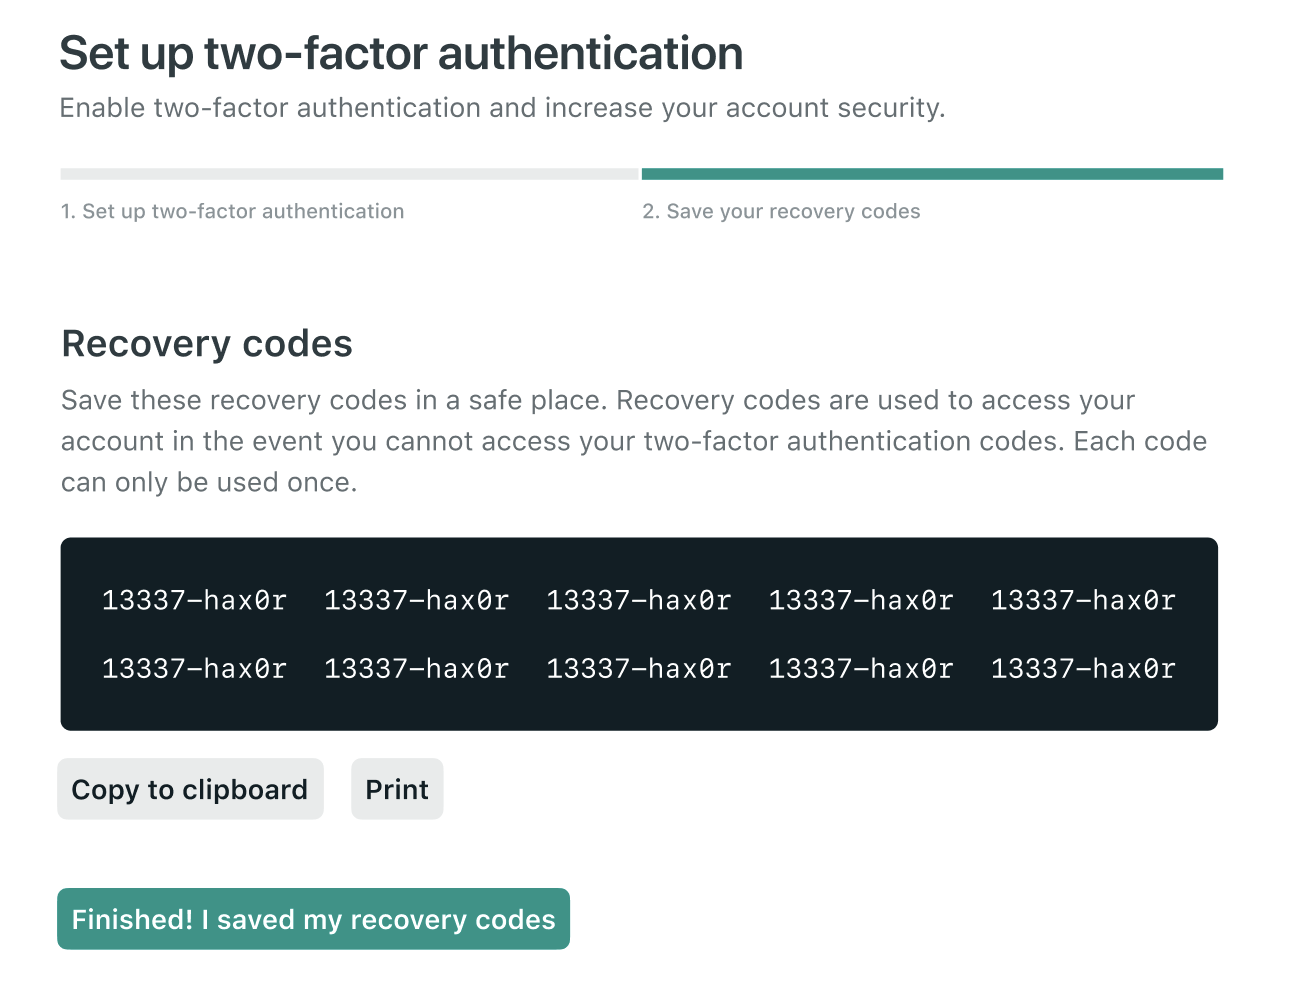 Recovery codes page